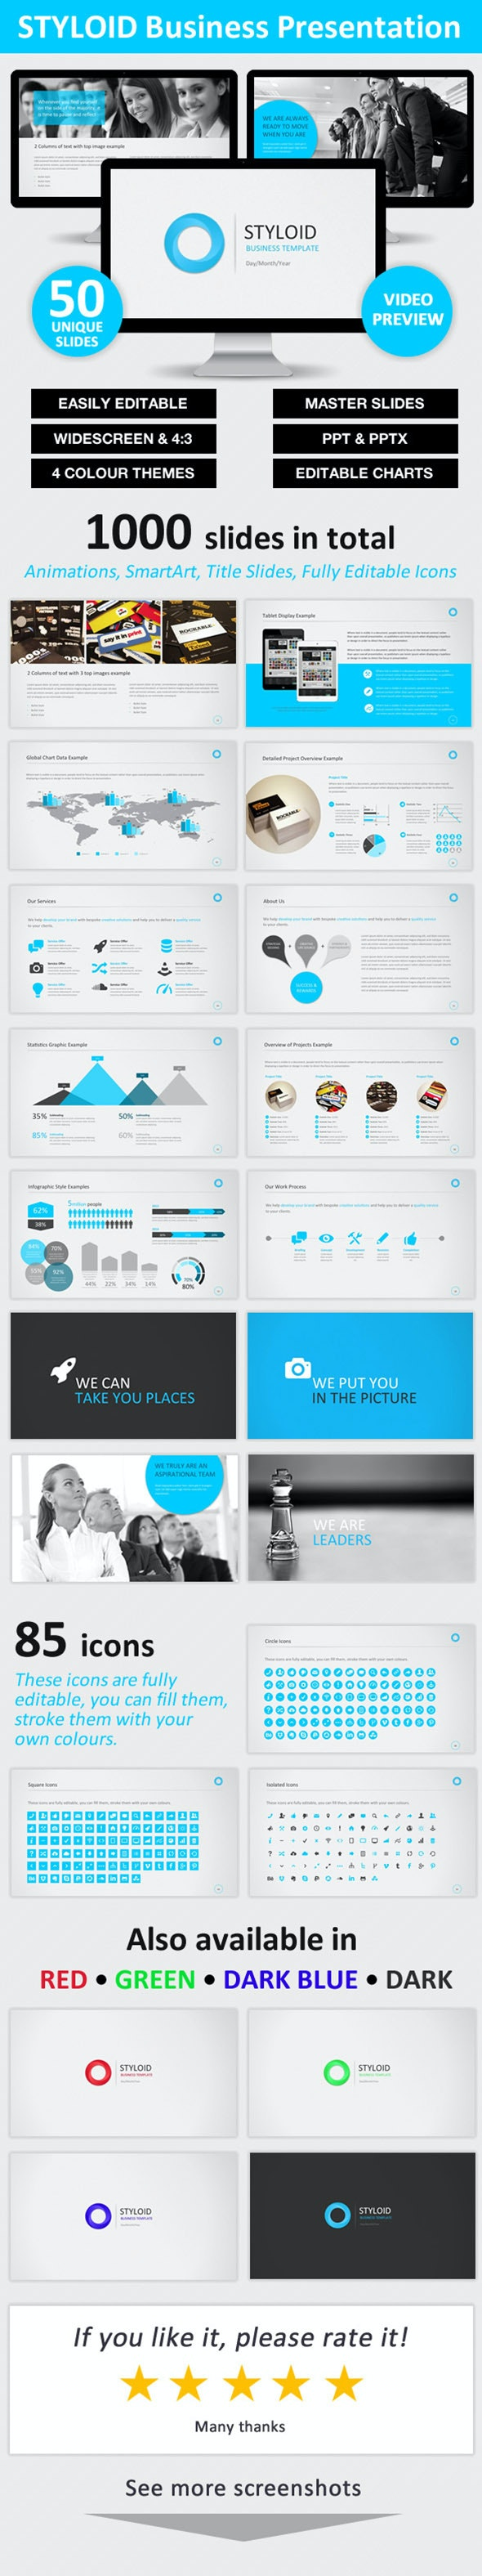 STYLOID Business PowerPoint Template - Business PowerPoint Templates